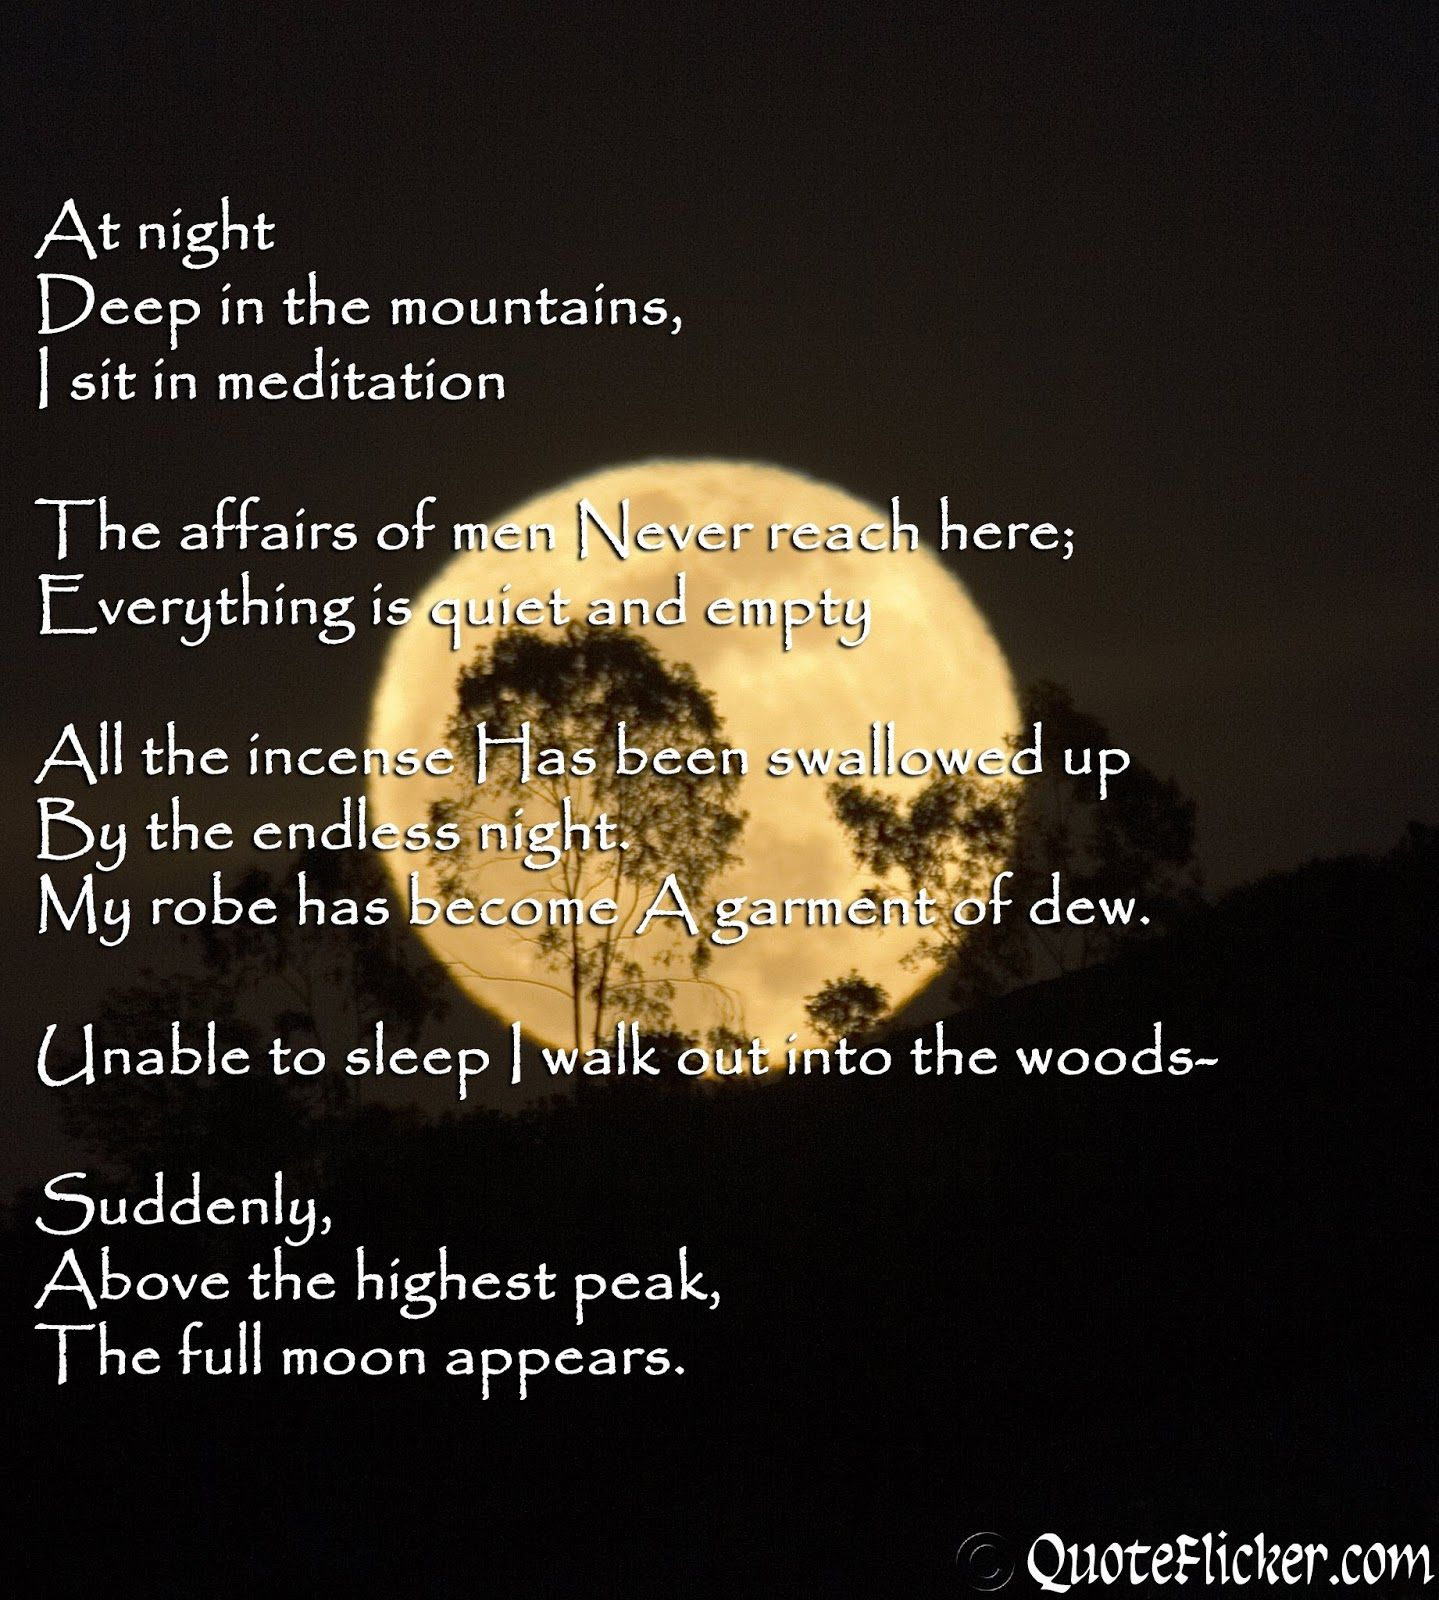 Moon Sayings Quotes Collection The full moon appears